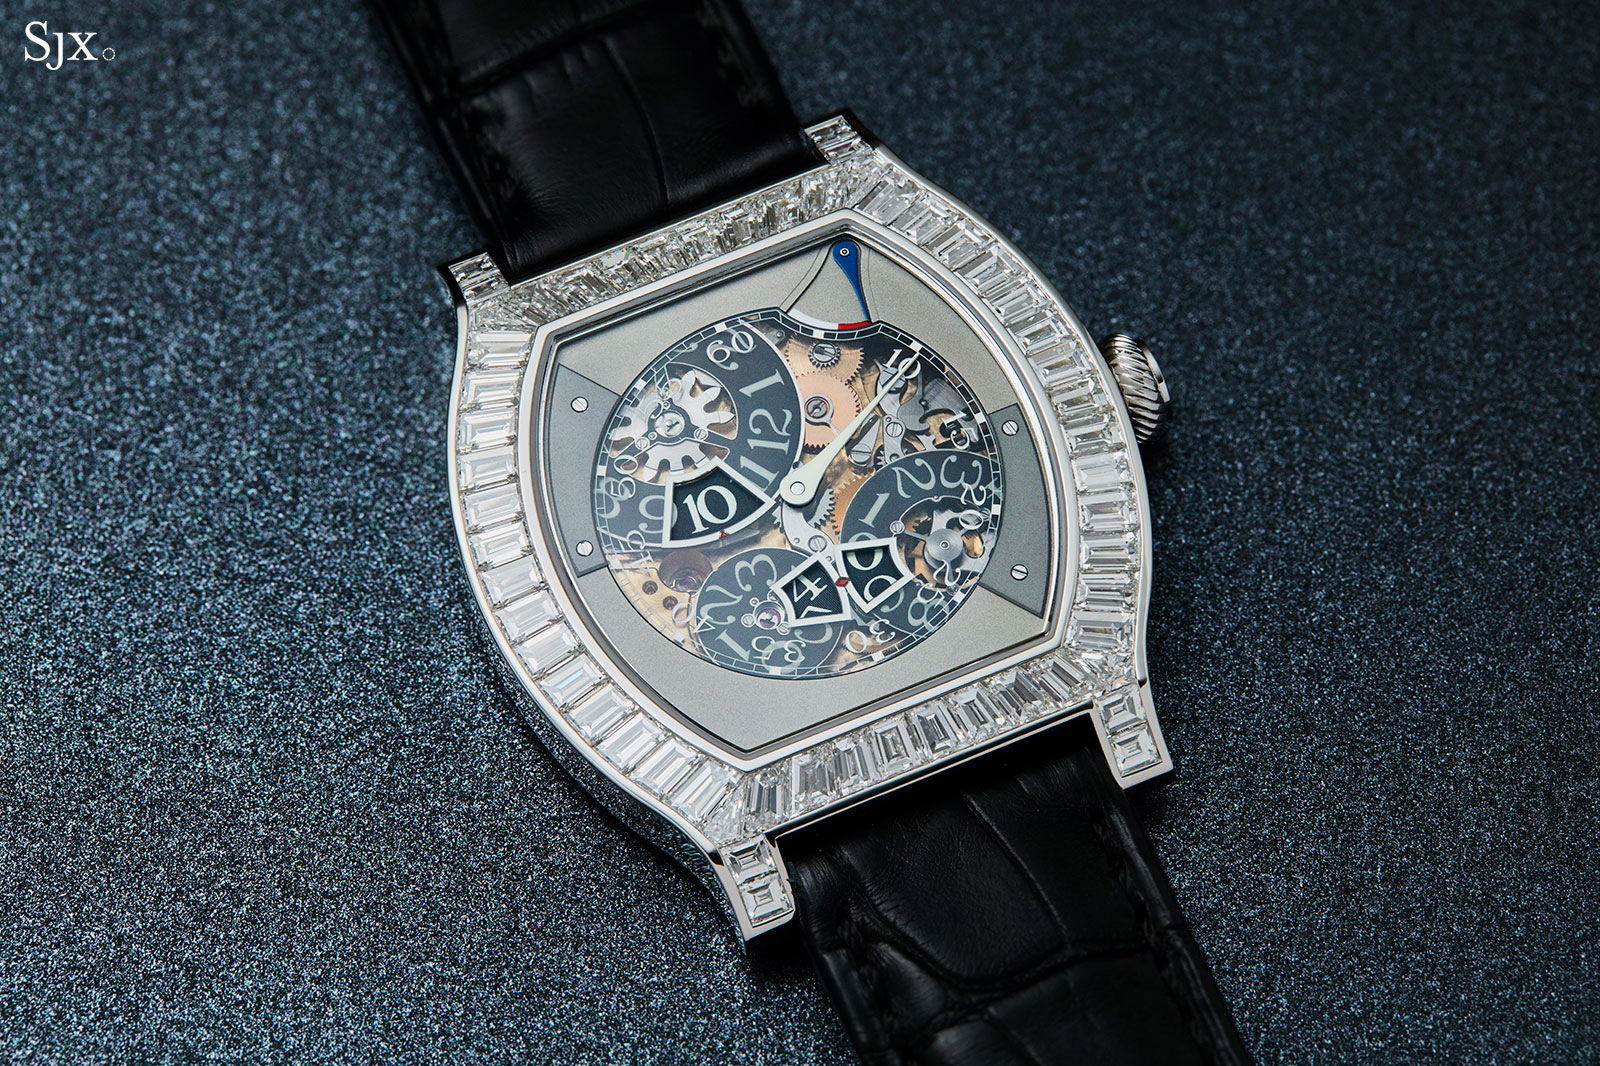 FP Journe Vagabondage III diamonds 3